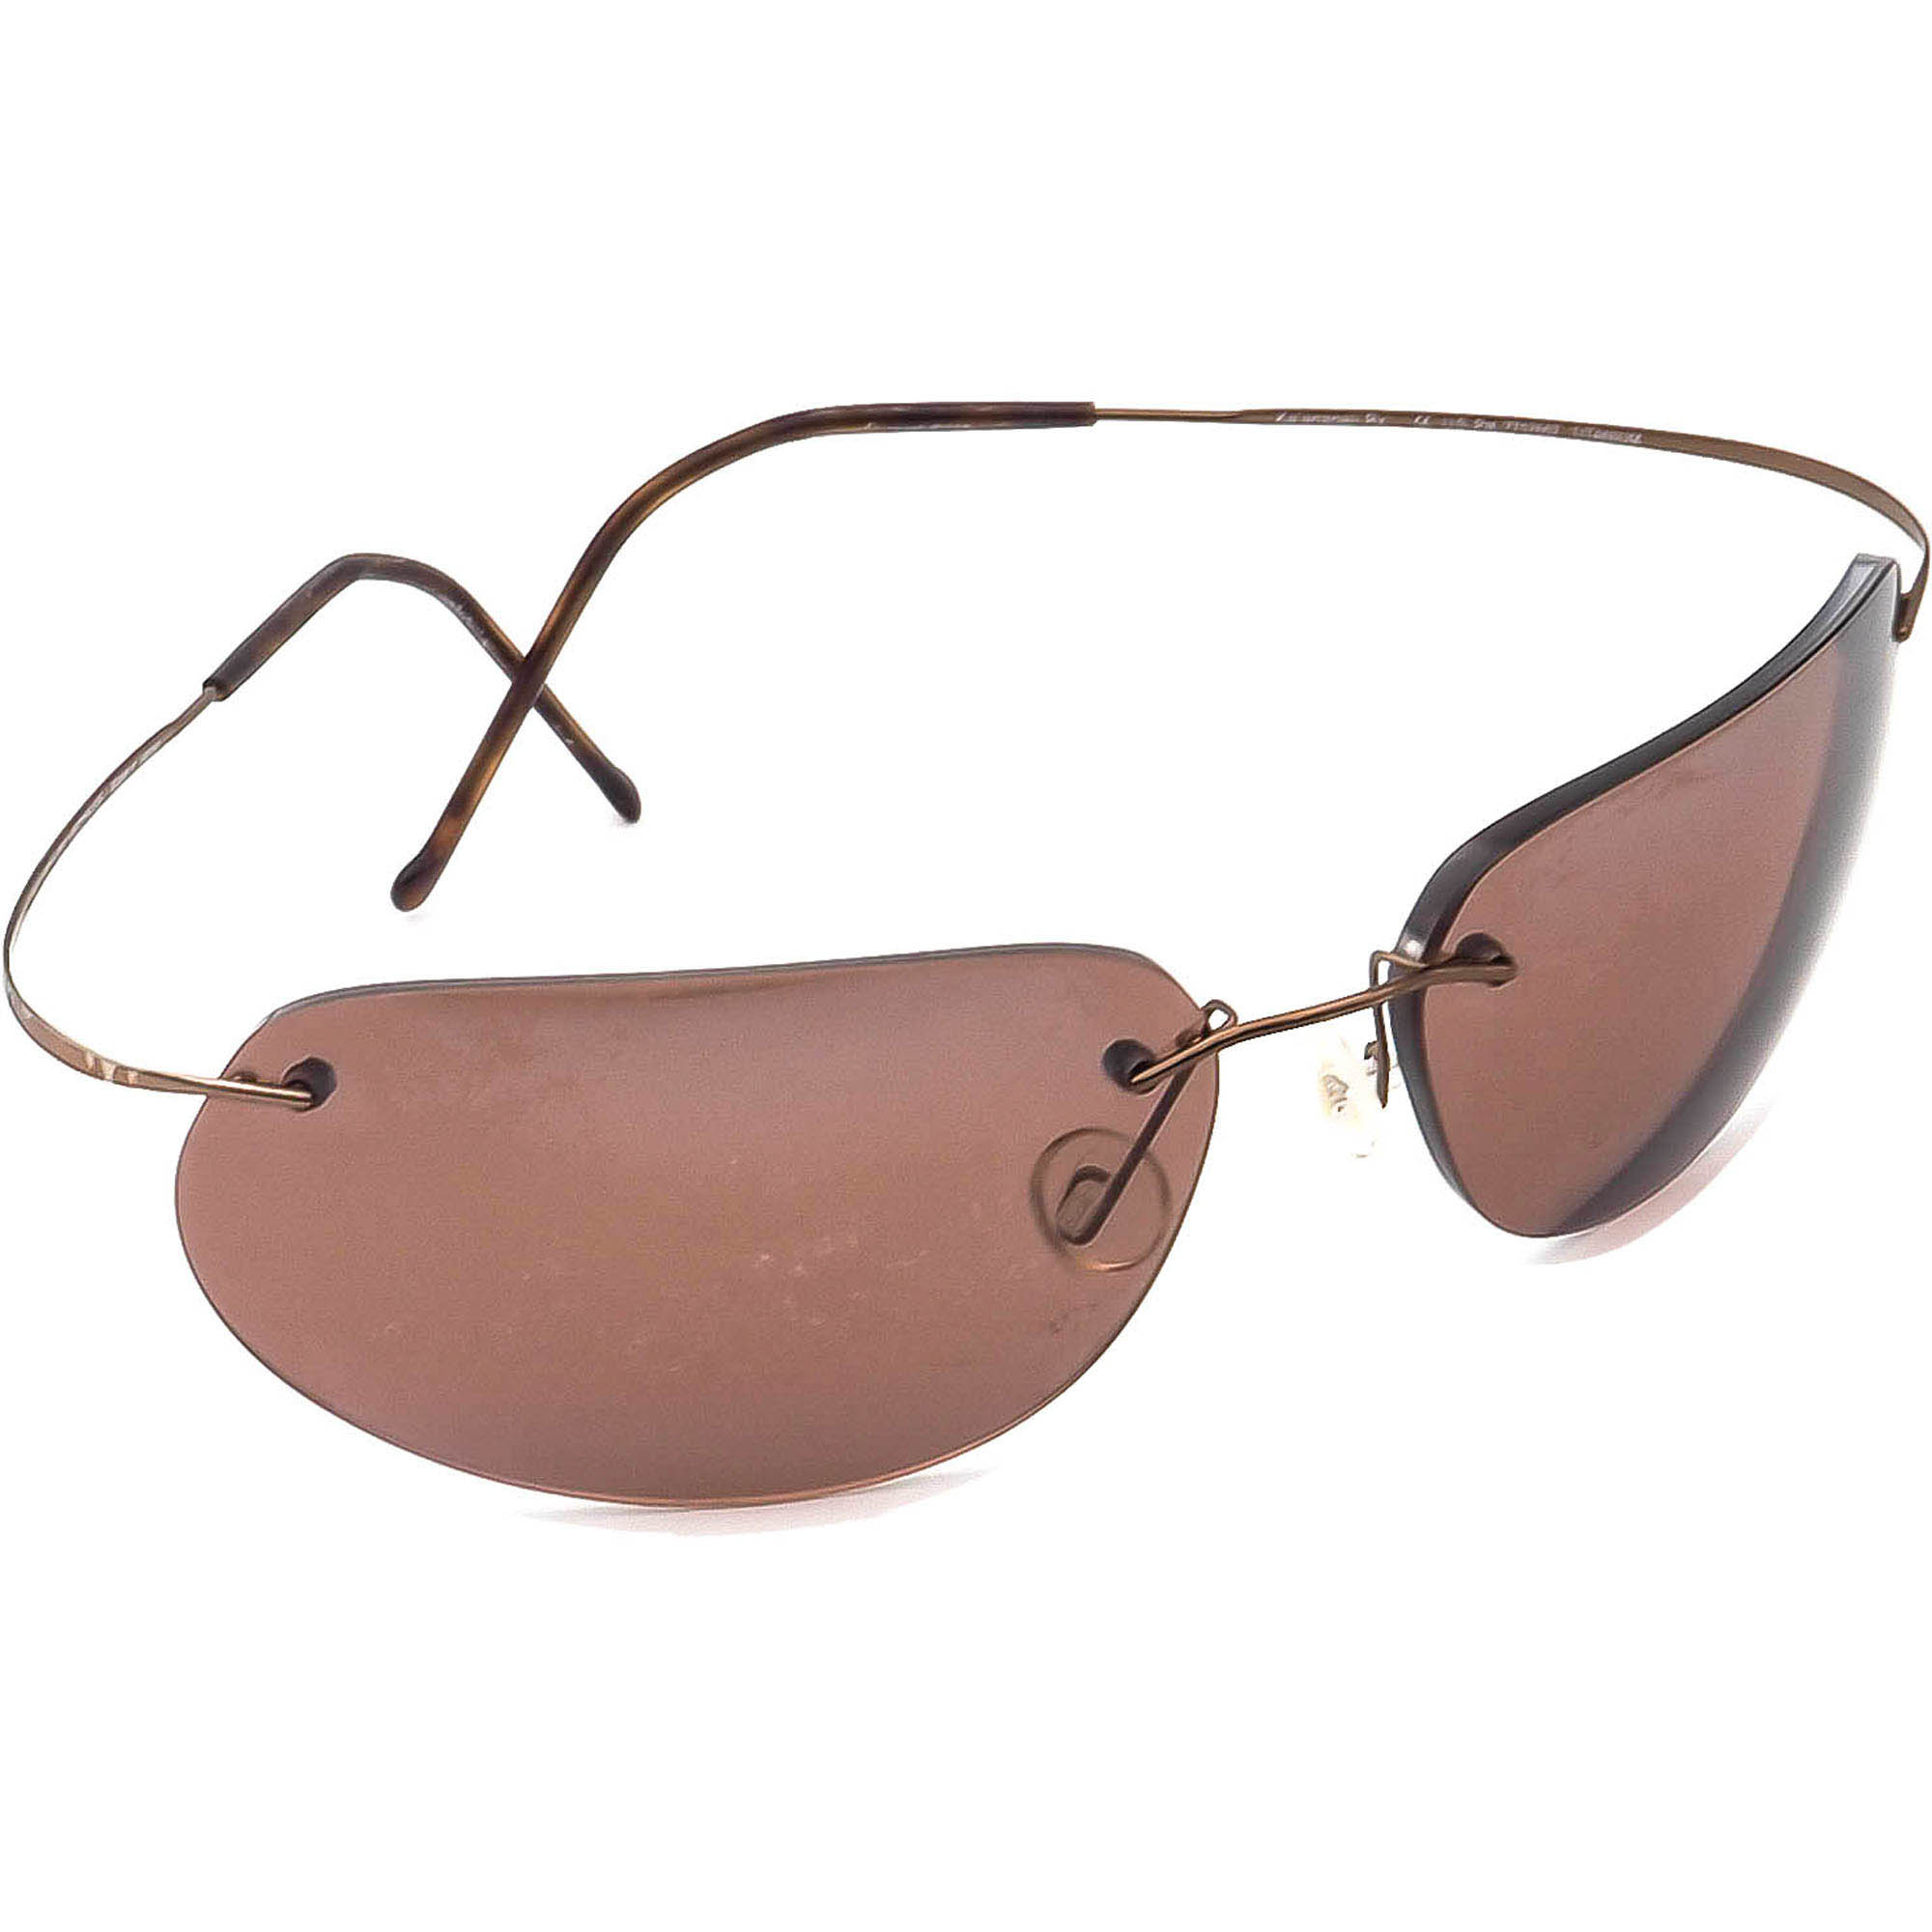 Maui Jim MJ-501-23 Ka'anapali Titanium Sunglasses Frame Only